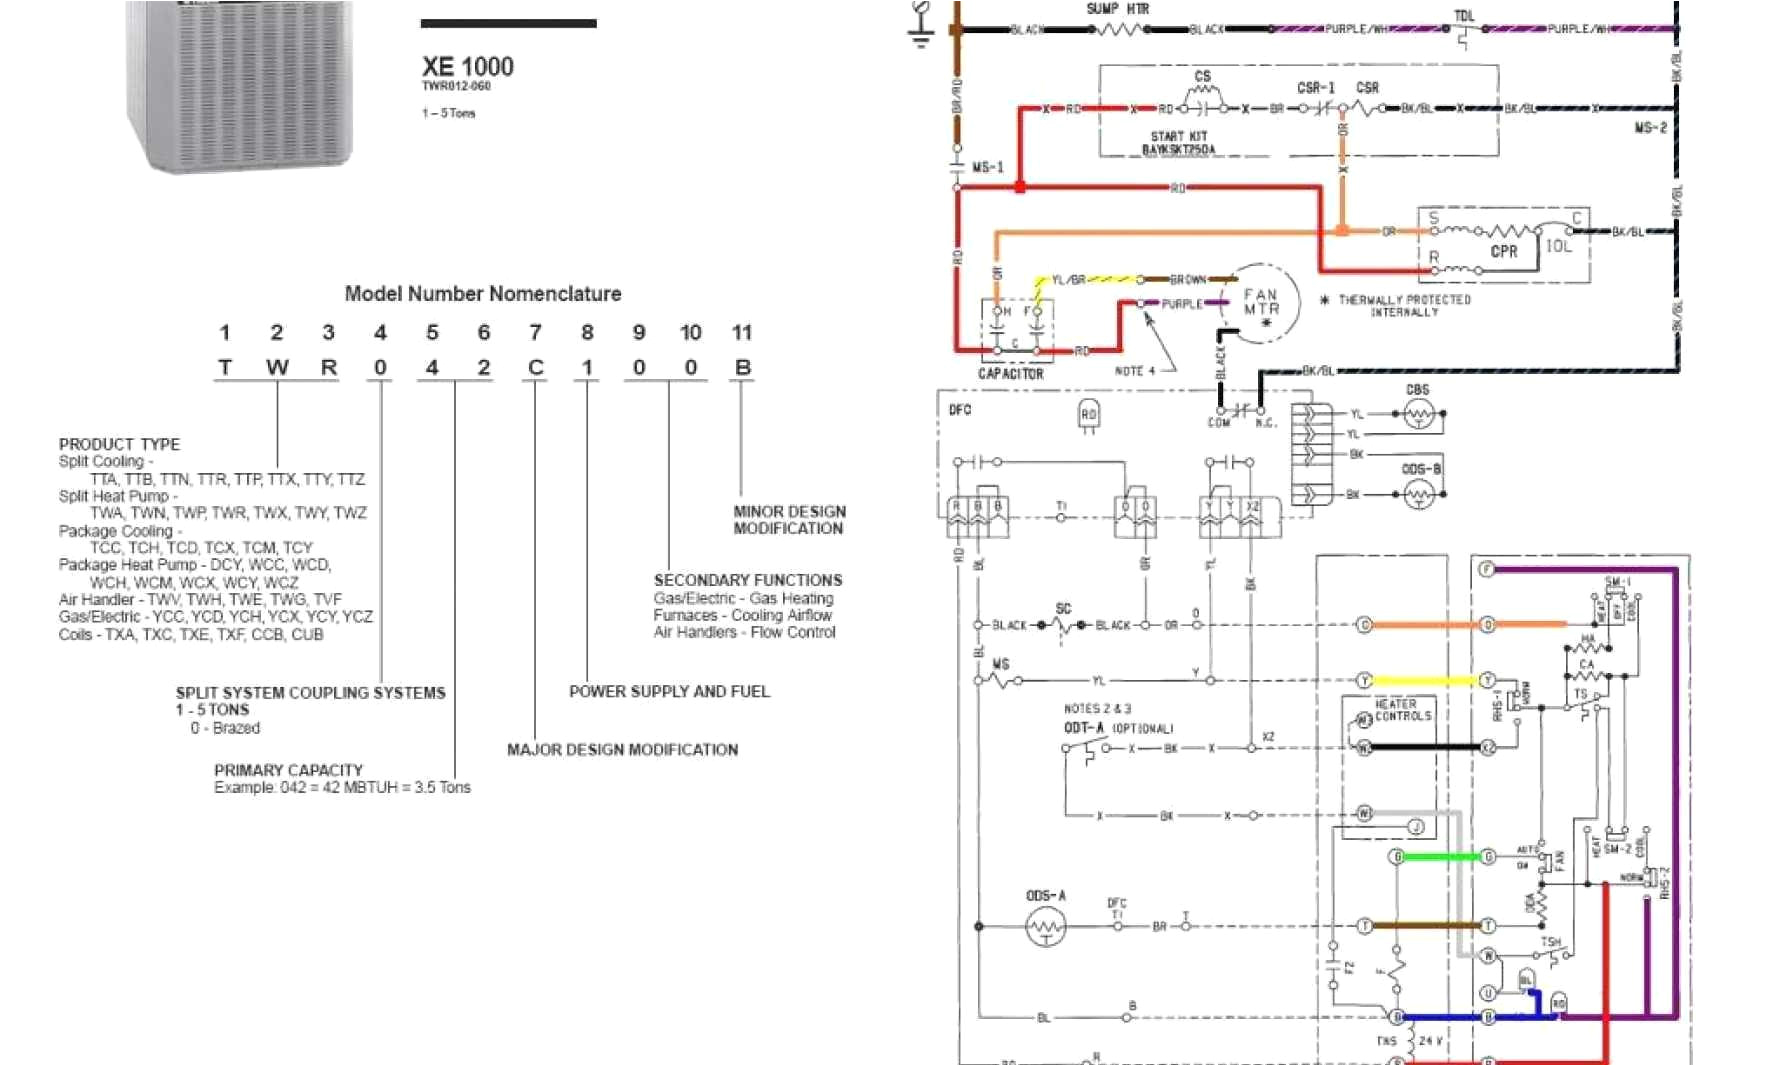 trane xe 1200 wiring diagram wiring diagram database blog air conditioner wiring diagram for 1200 xl